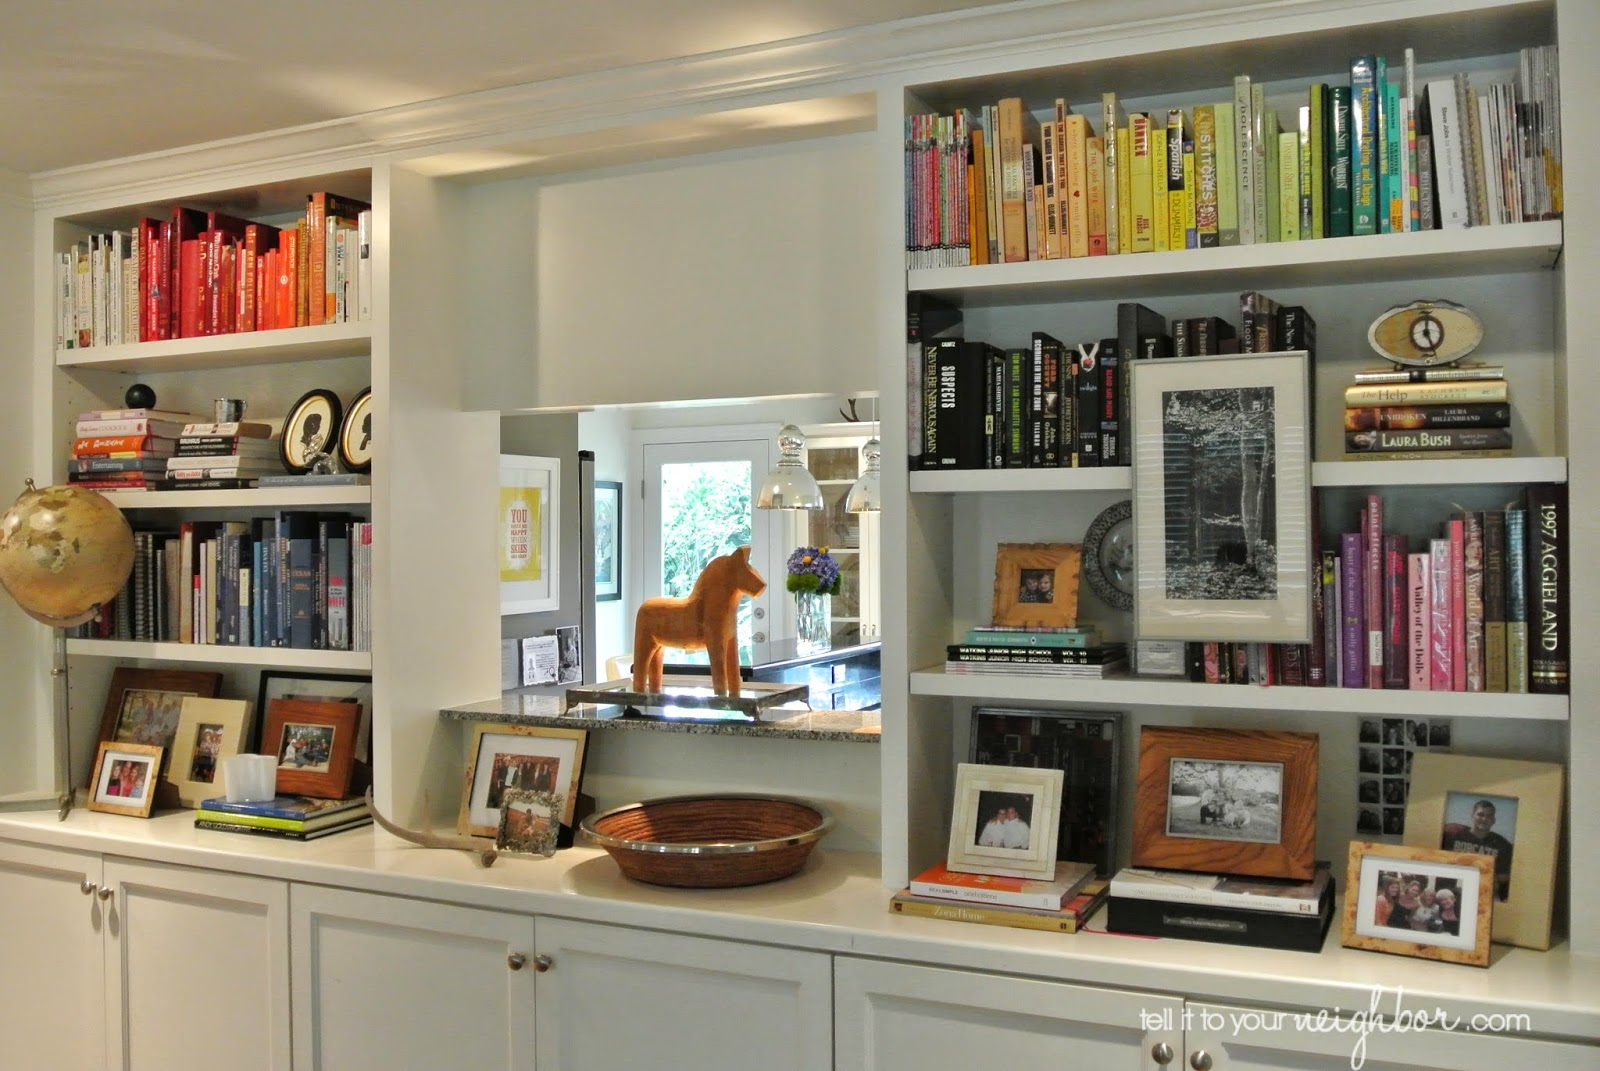 bookcase styling - Styling Bookcases